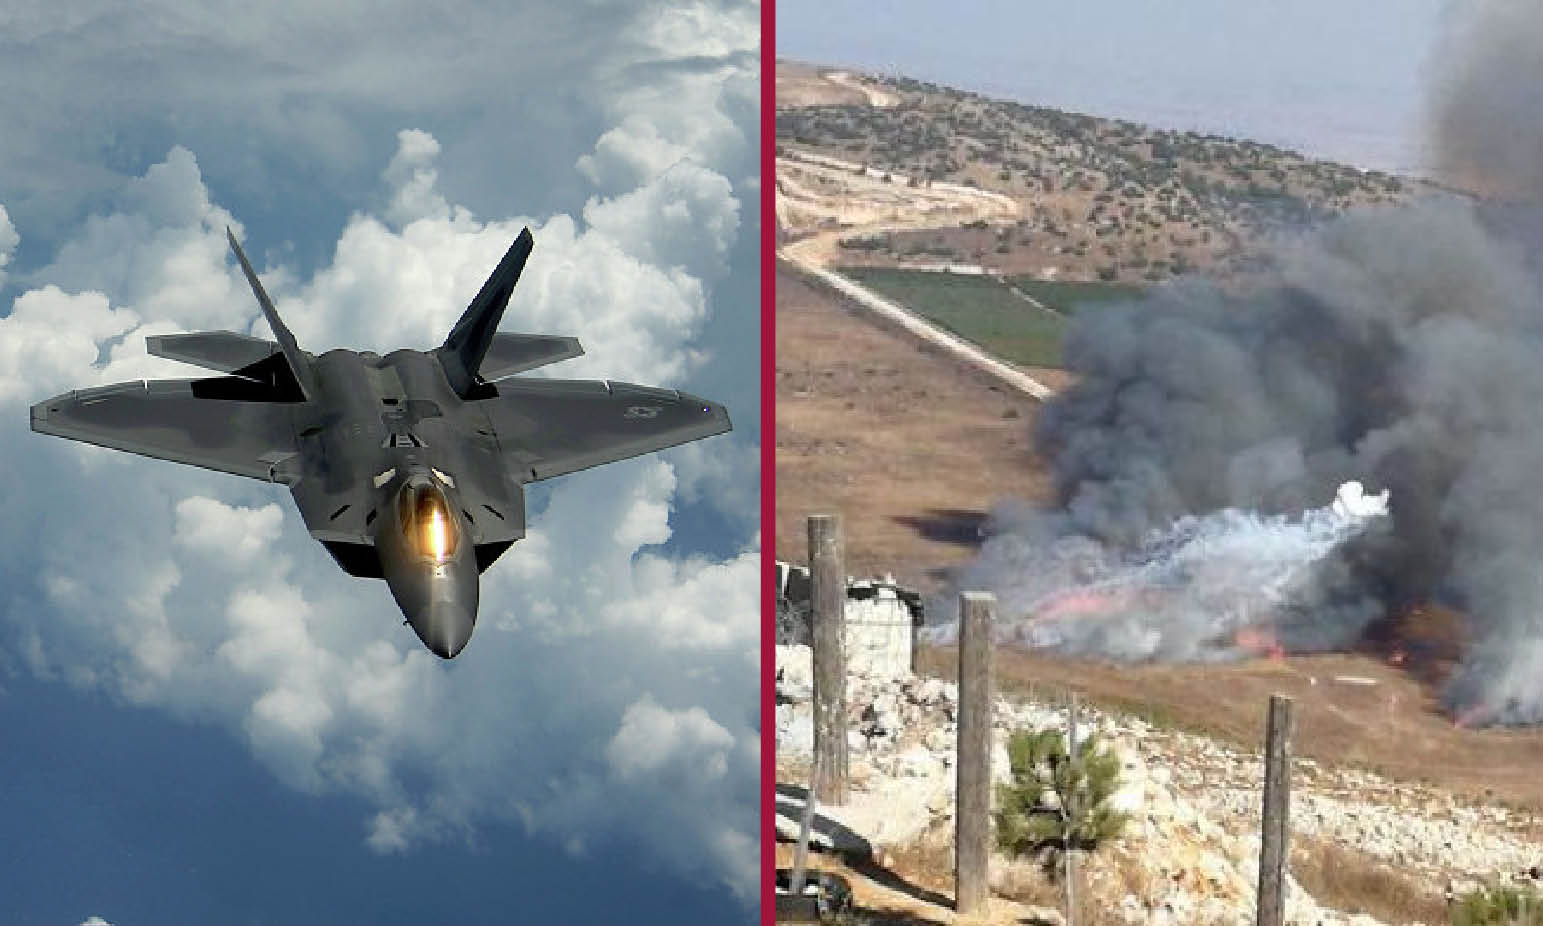 ISRAEL ON WAR WITH LEBANON. US AIRSTRIKES BREAK CEASEFIRE IN SYRIA